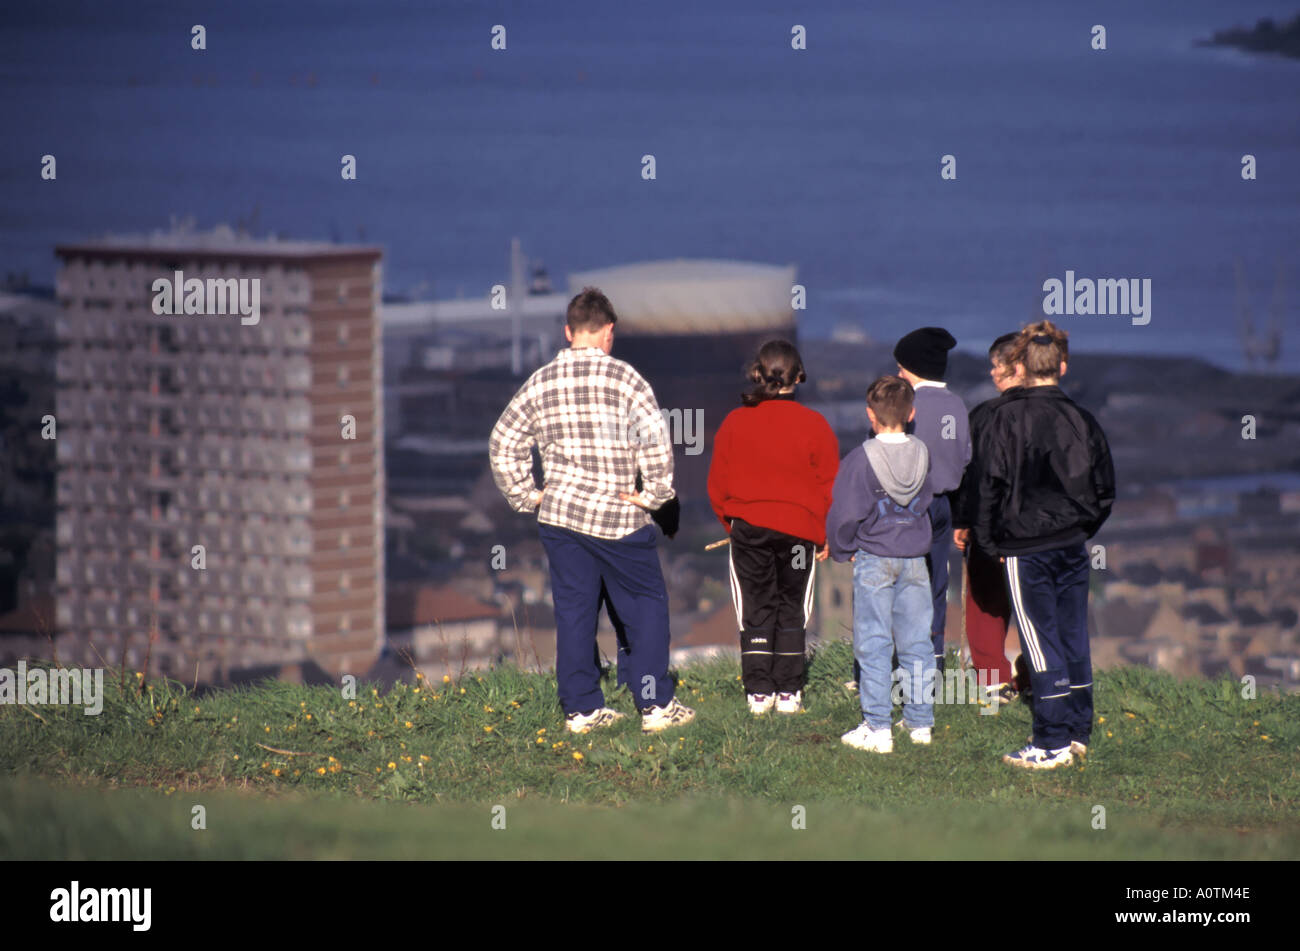 Dundee youngsters looking down on urban areas including high rise flats from highpoint known as Dundee Law - Stock Image